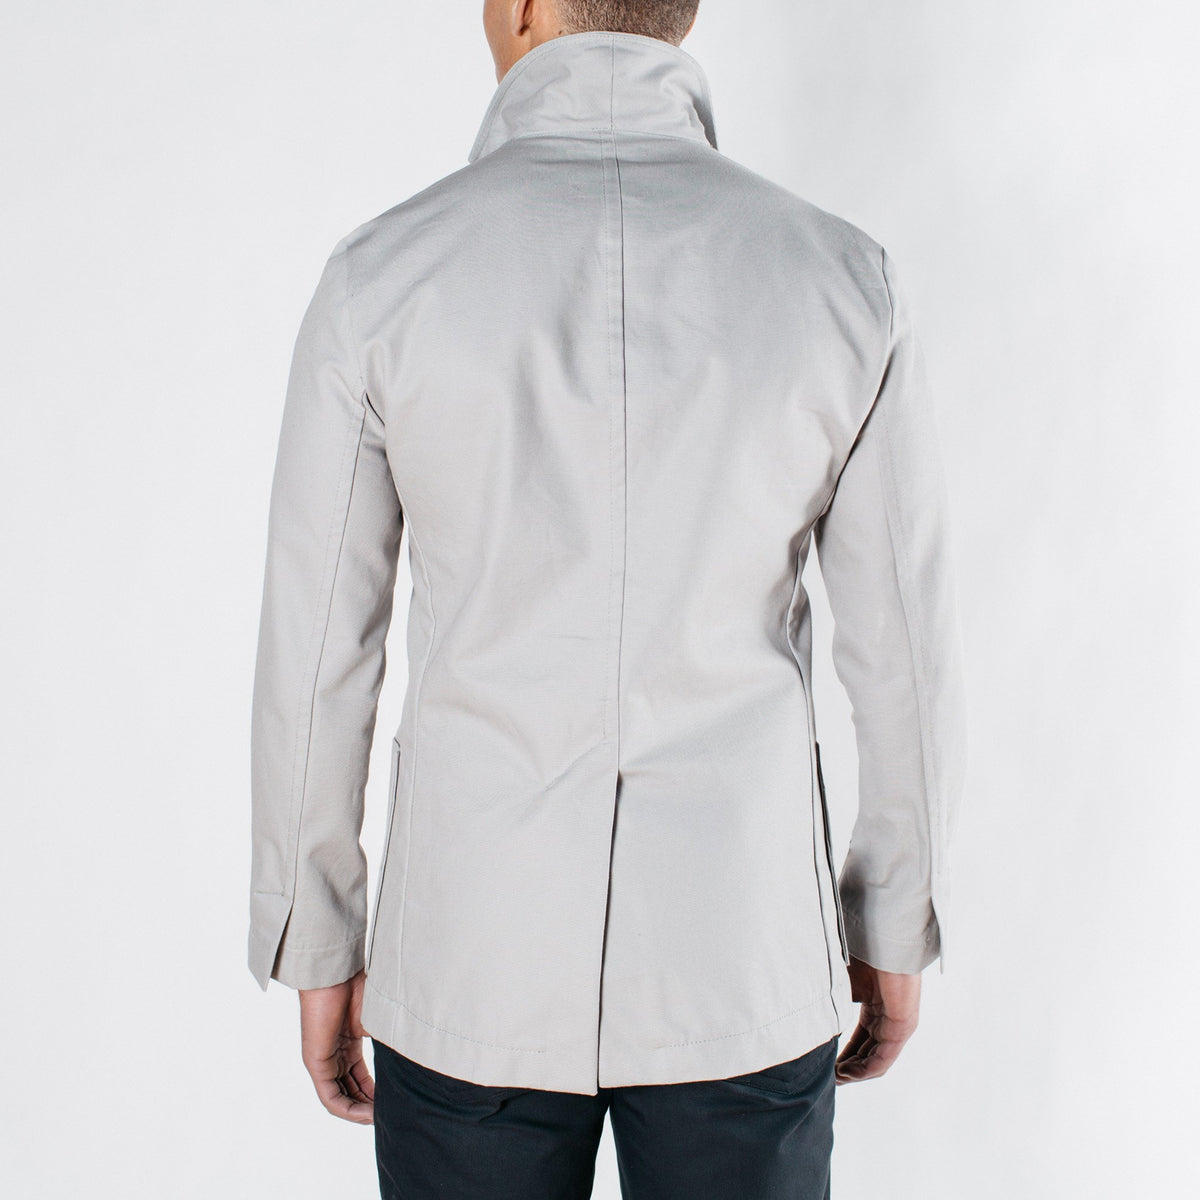 Dash Jacket - Cloud